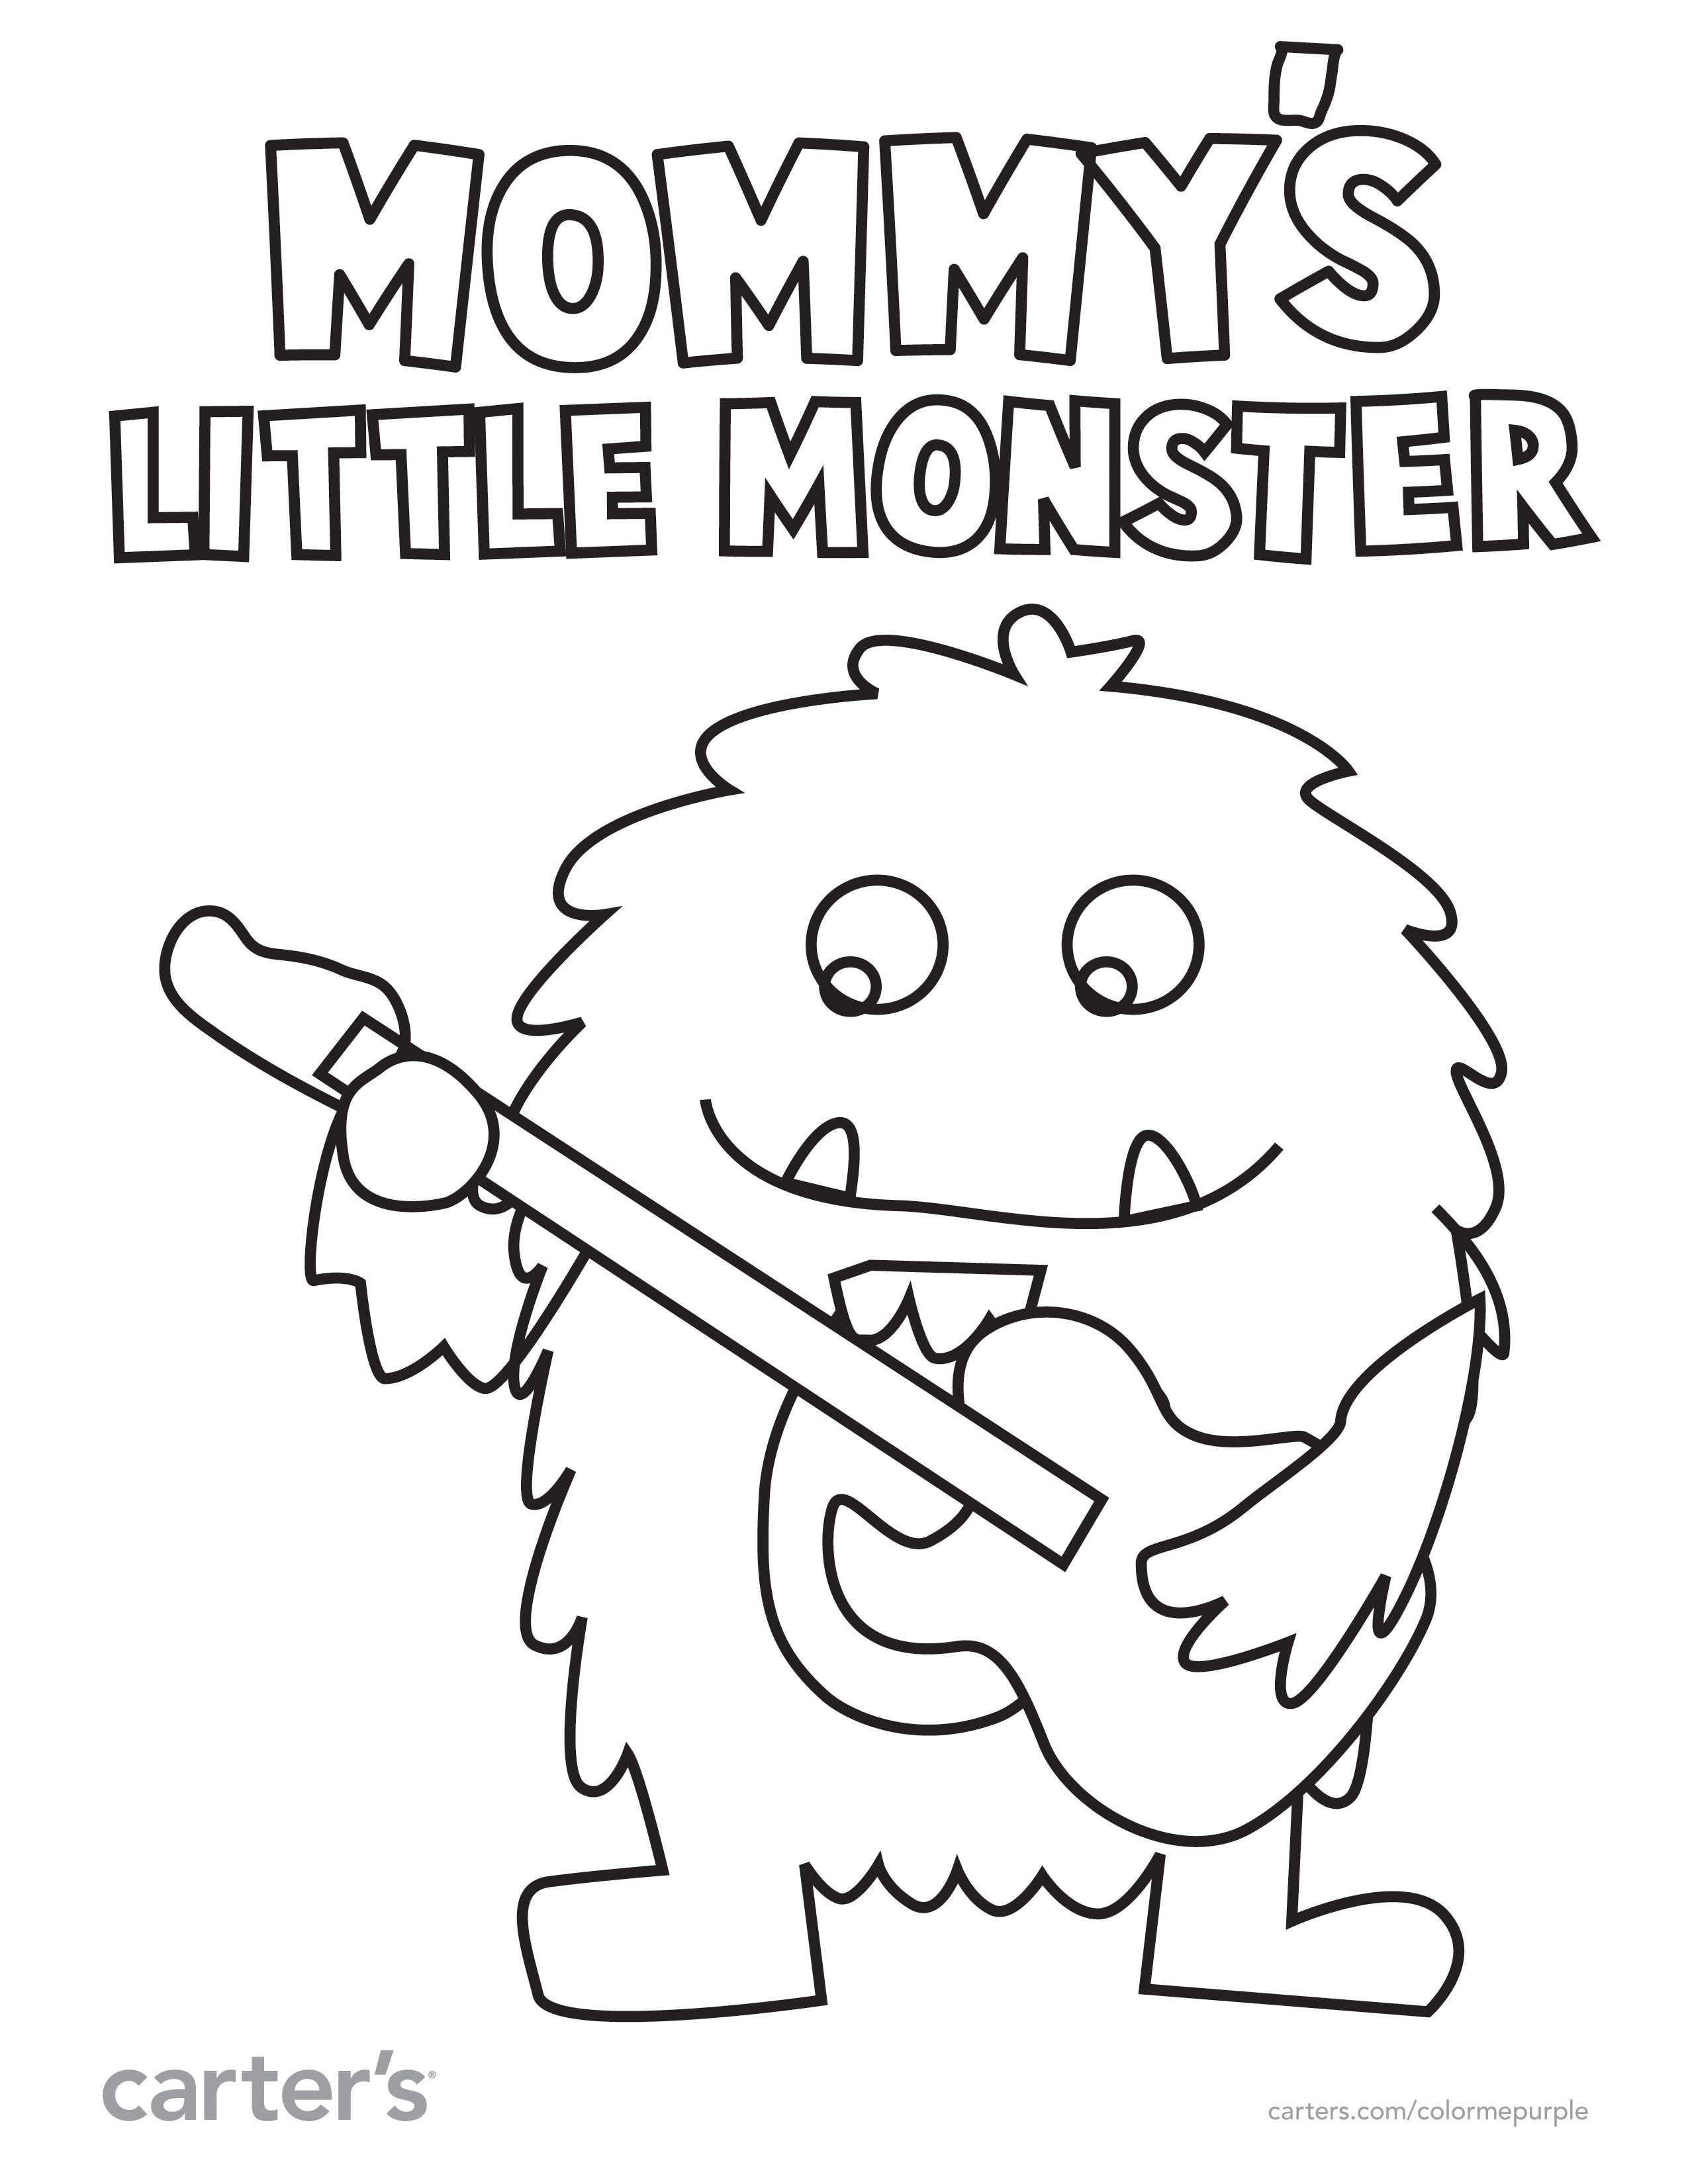 mommy u0027s little monster is ready to play other fun coloring pages